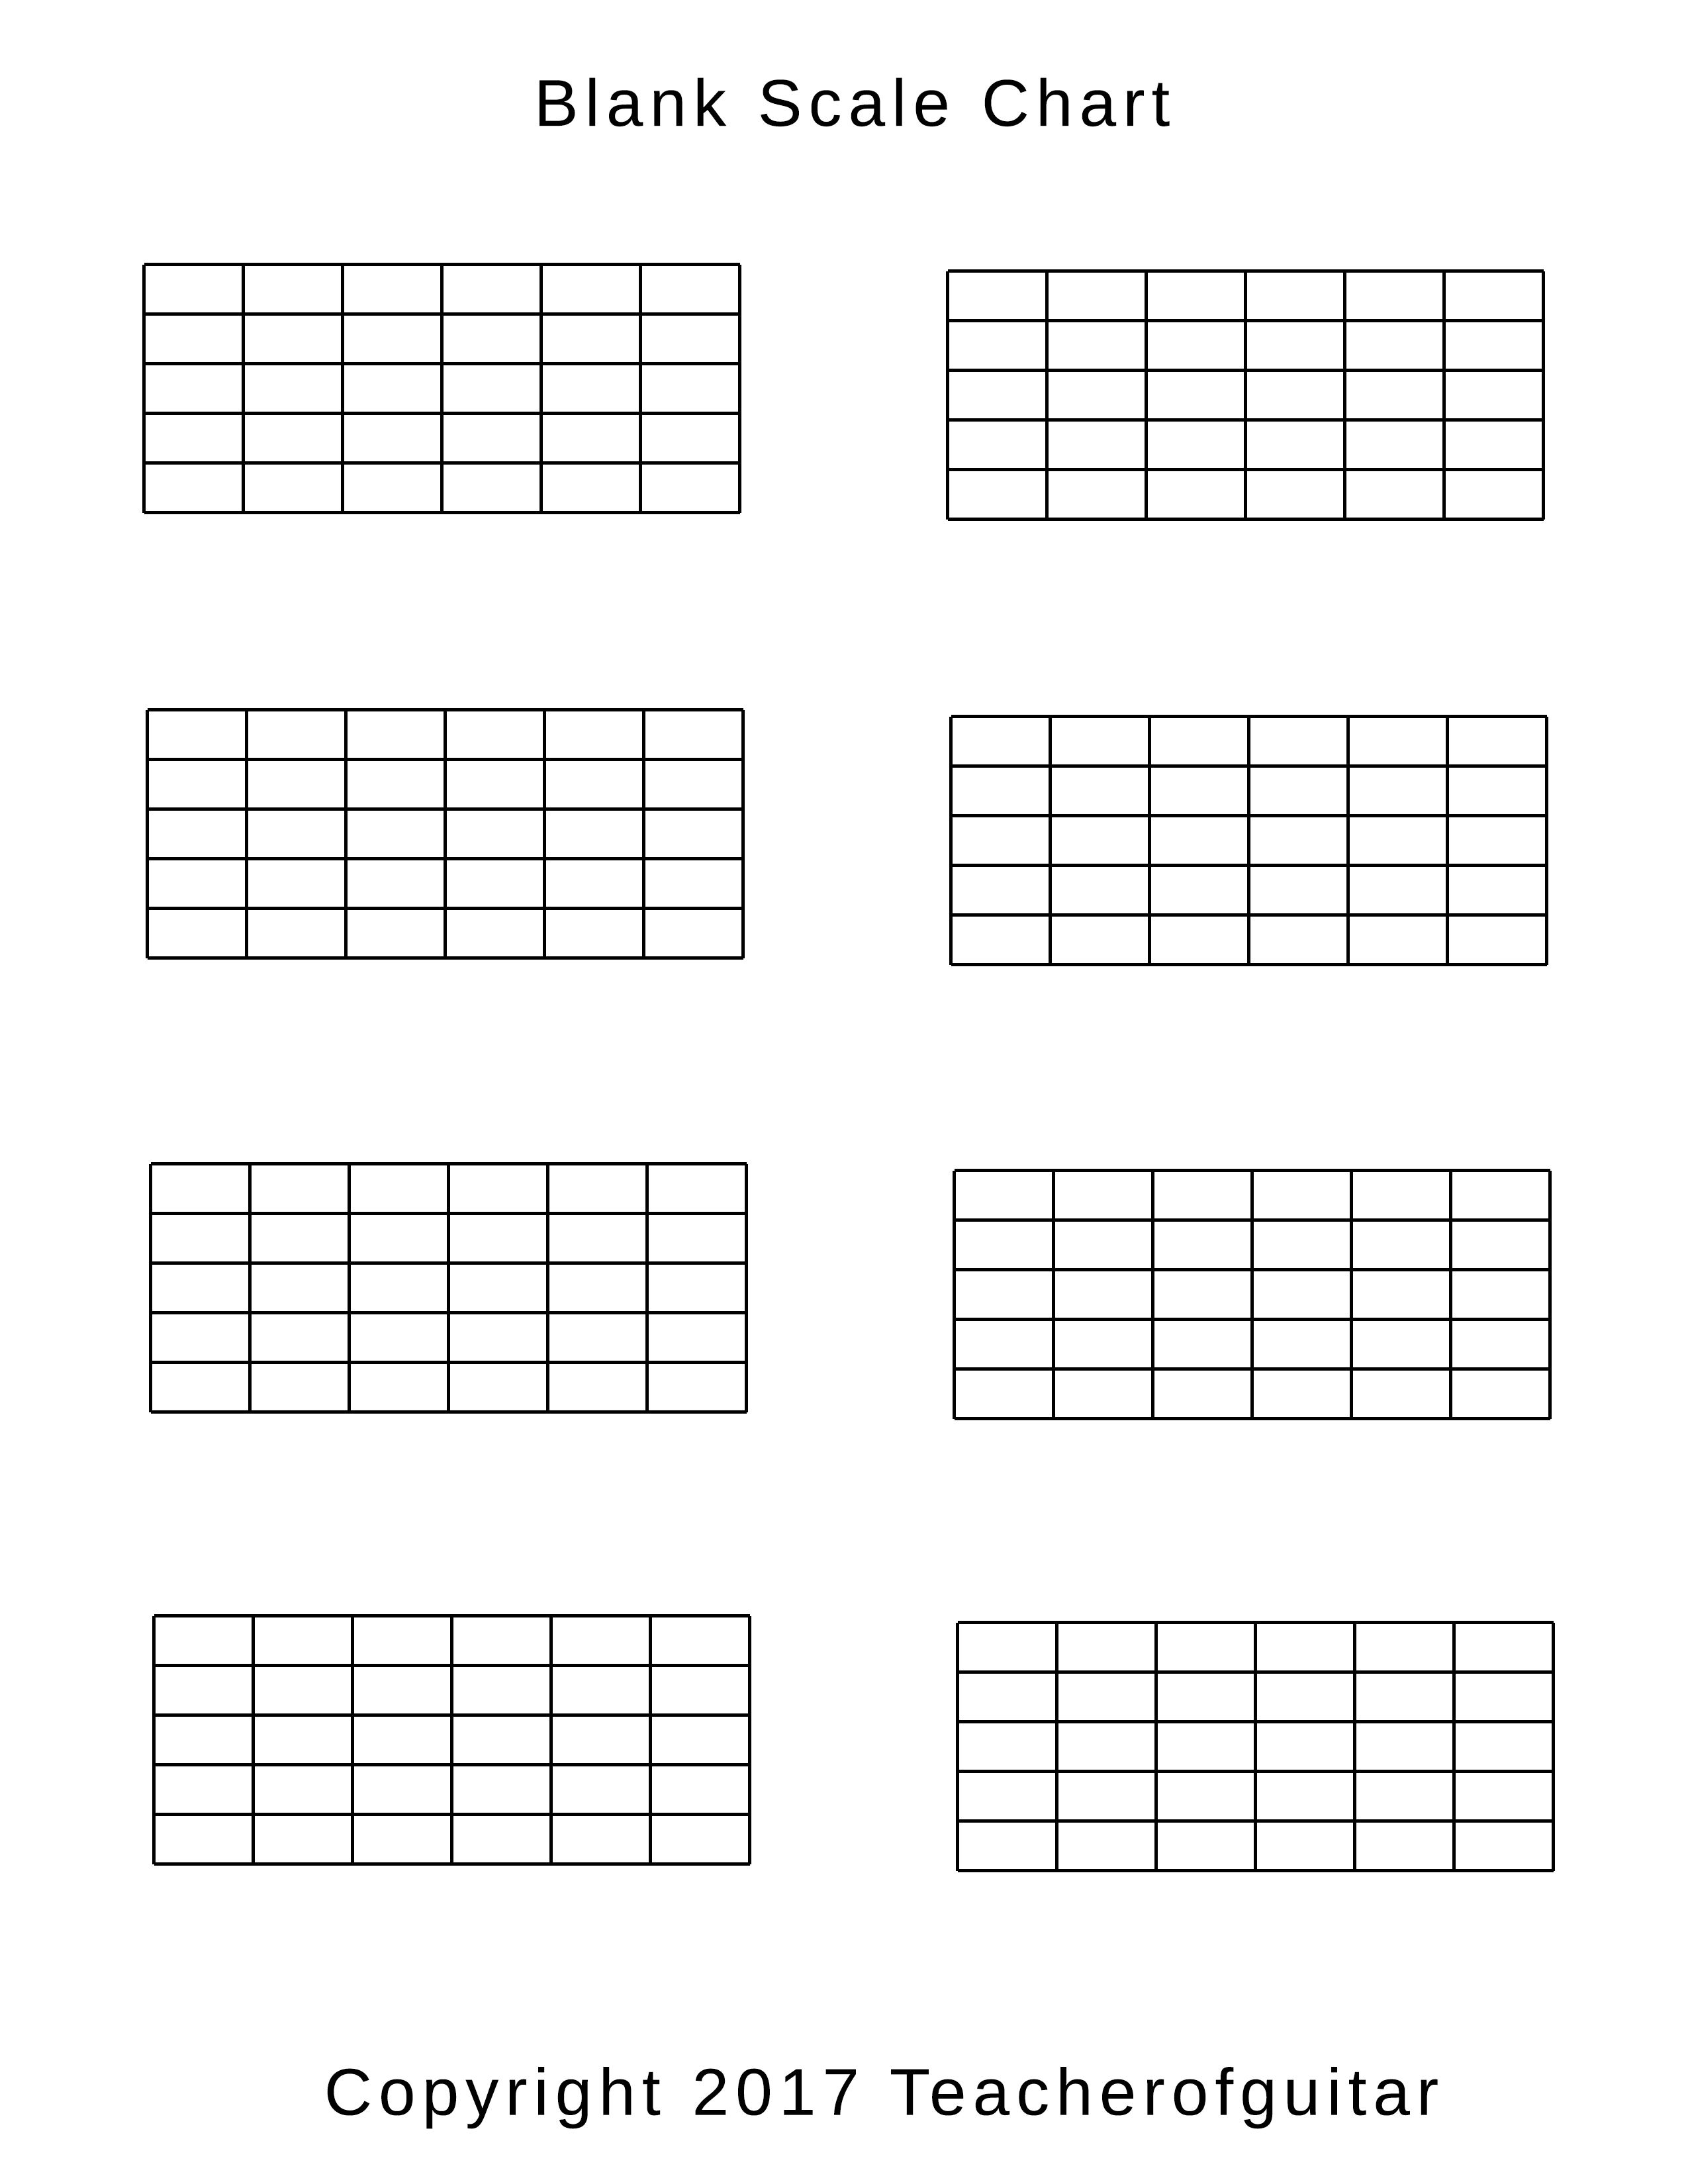 graphic about Guitar Pentatonic Scale Chart Printable known as Blank Scale Chart - Trainer of Guitar